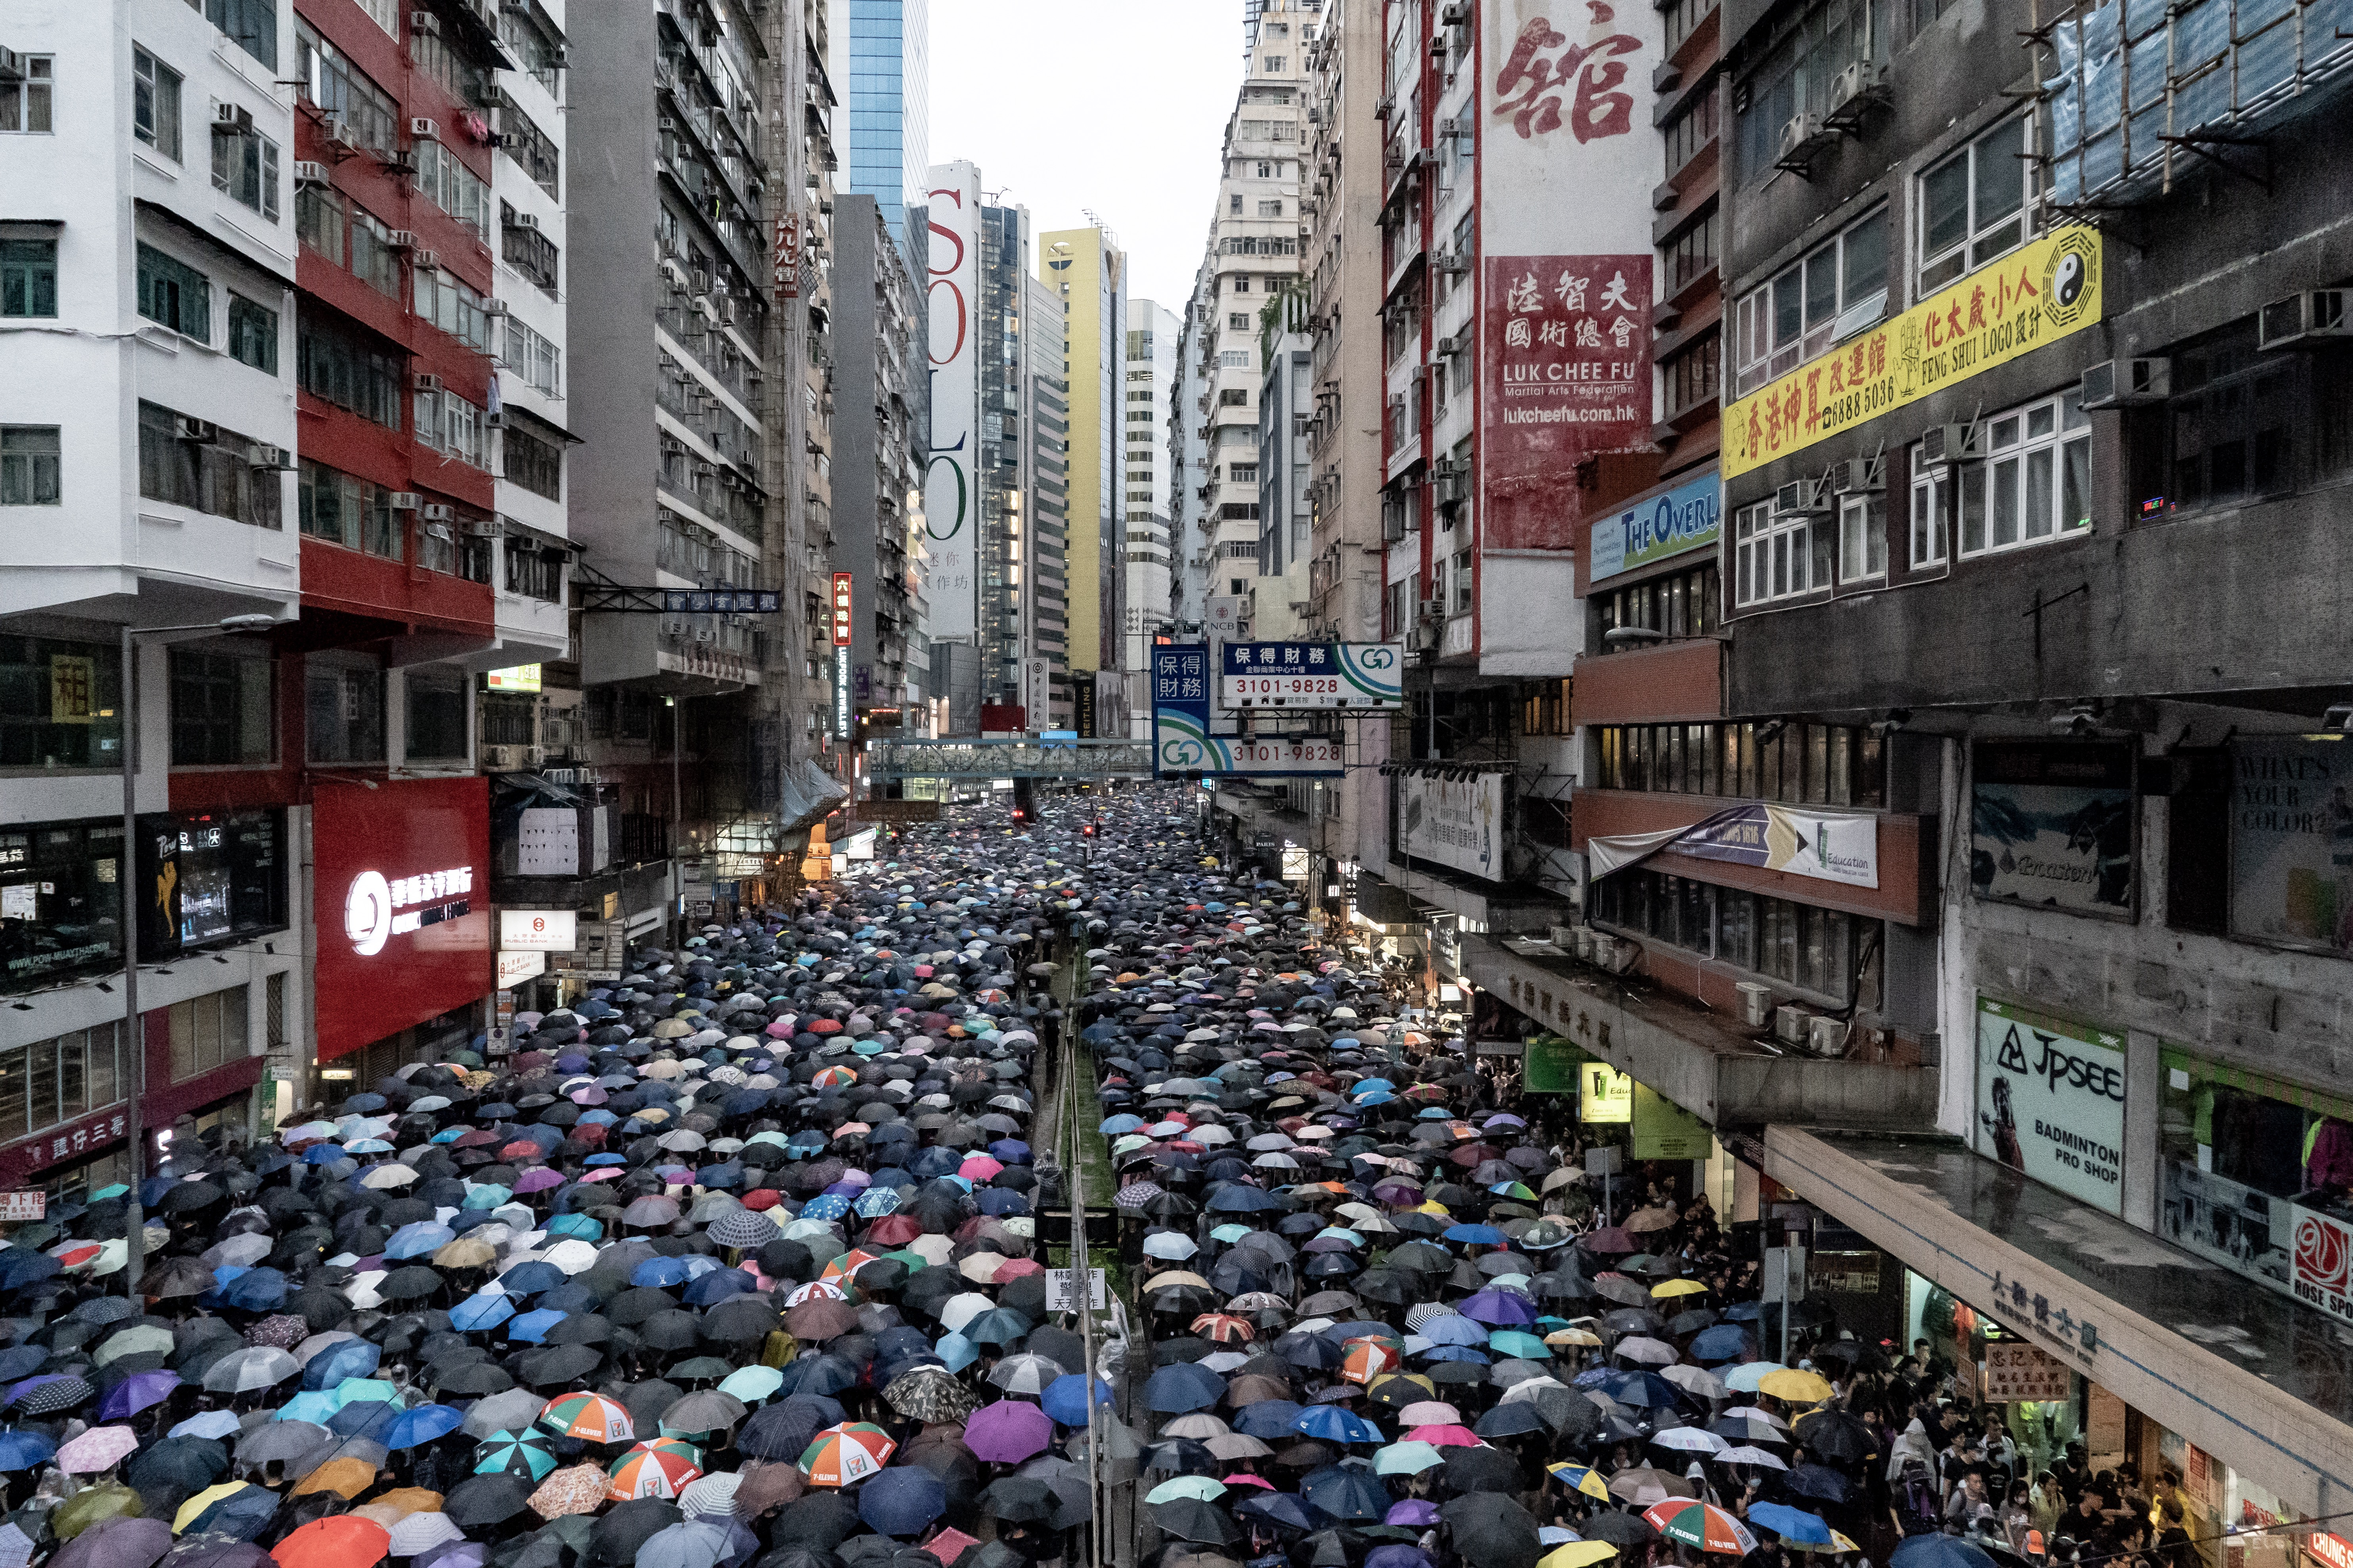 Protesters take part in a rally as they march on a street on August 18, 2019 in Hong Kong, China. (Photo by Anthony Kwan/Getty Images)